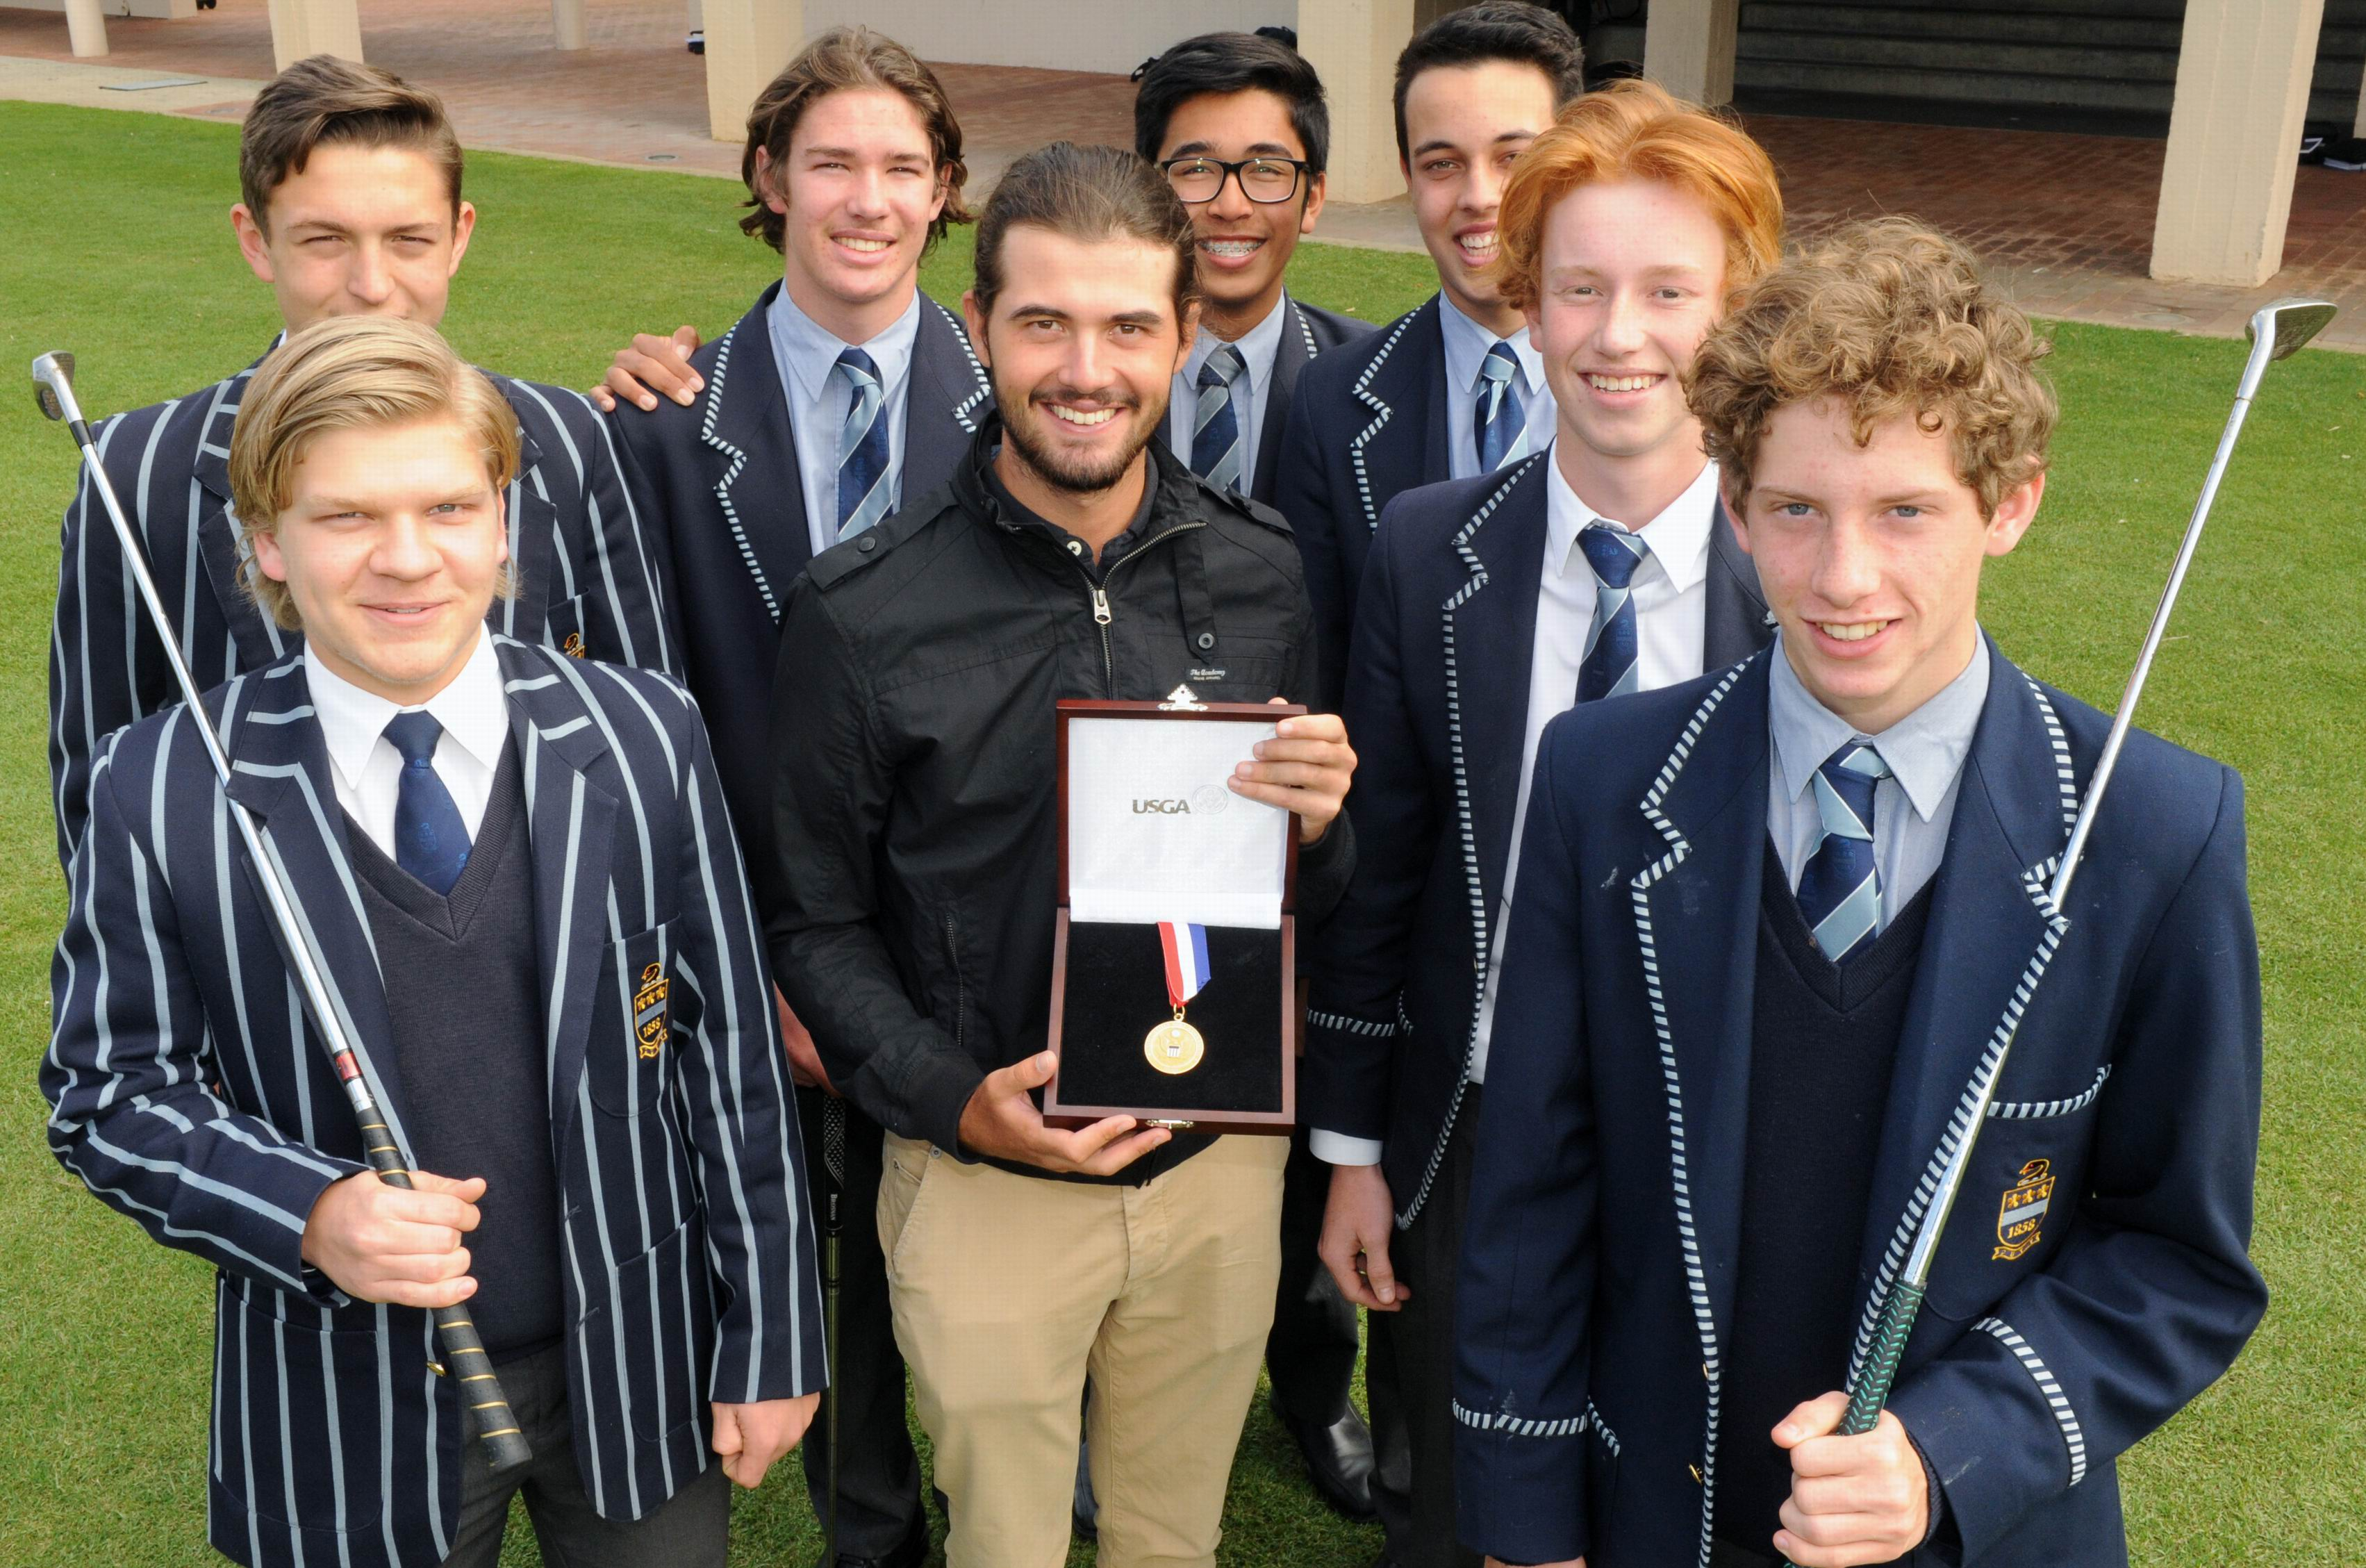 No Luck involved: Curtis talks to Hale School students about what it takes to achieve golf success